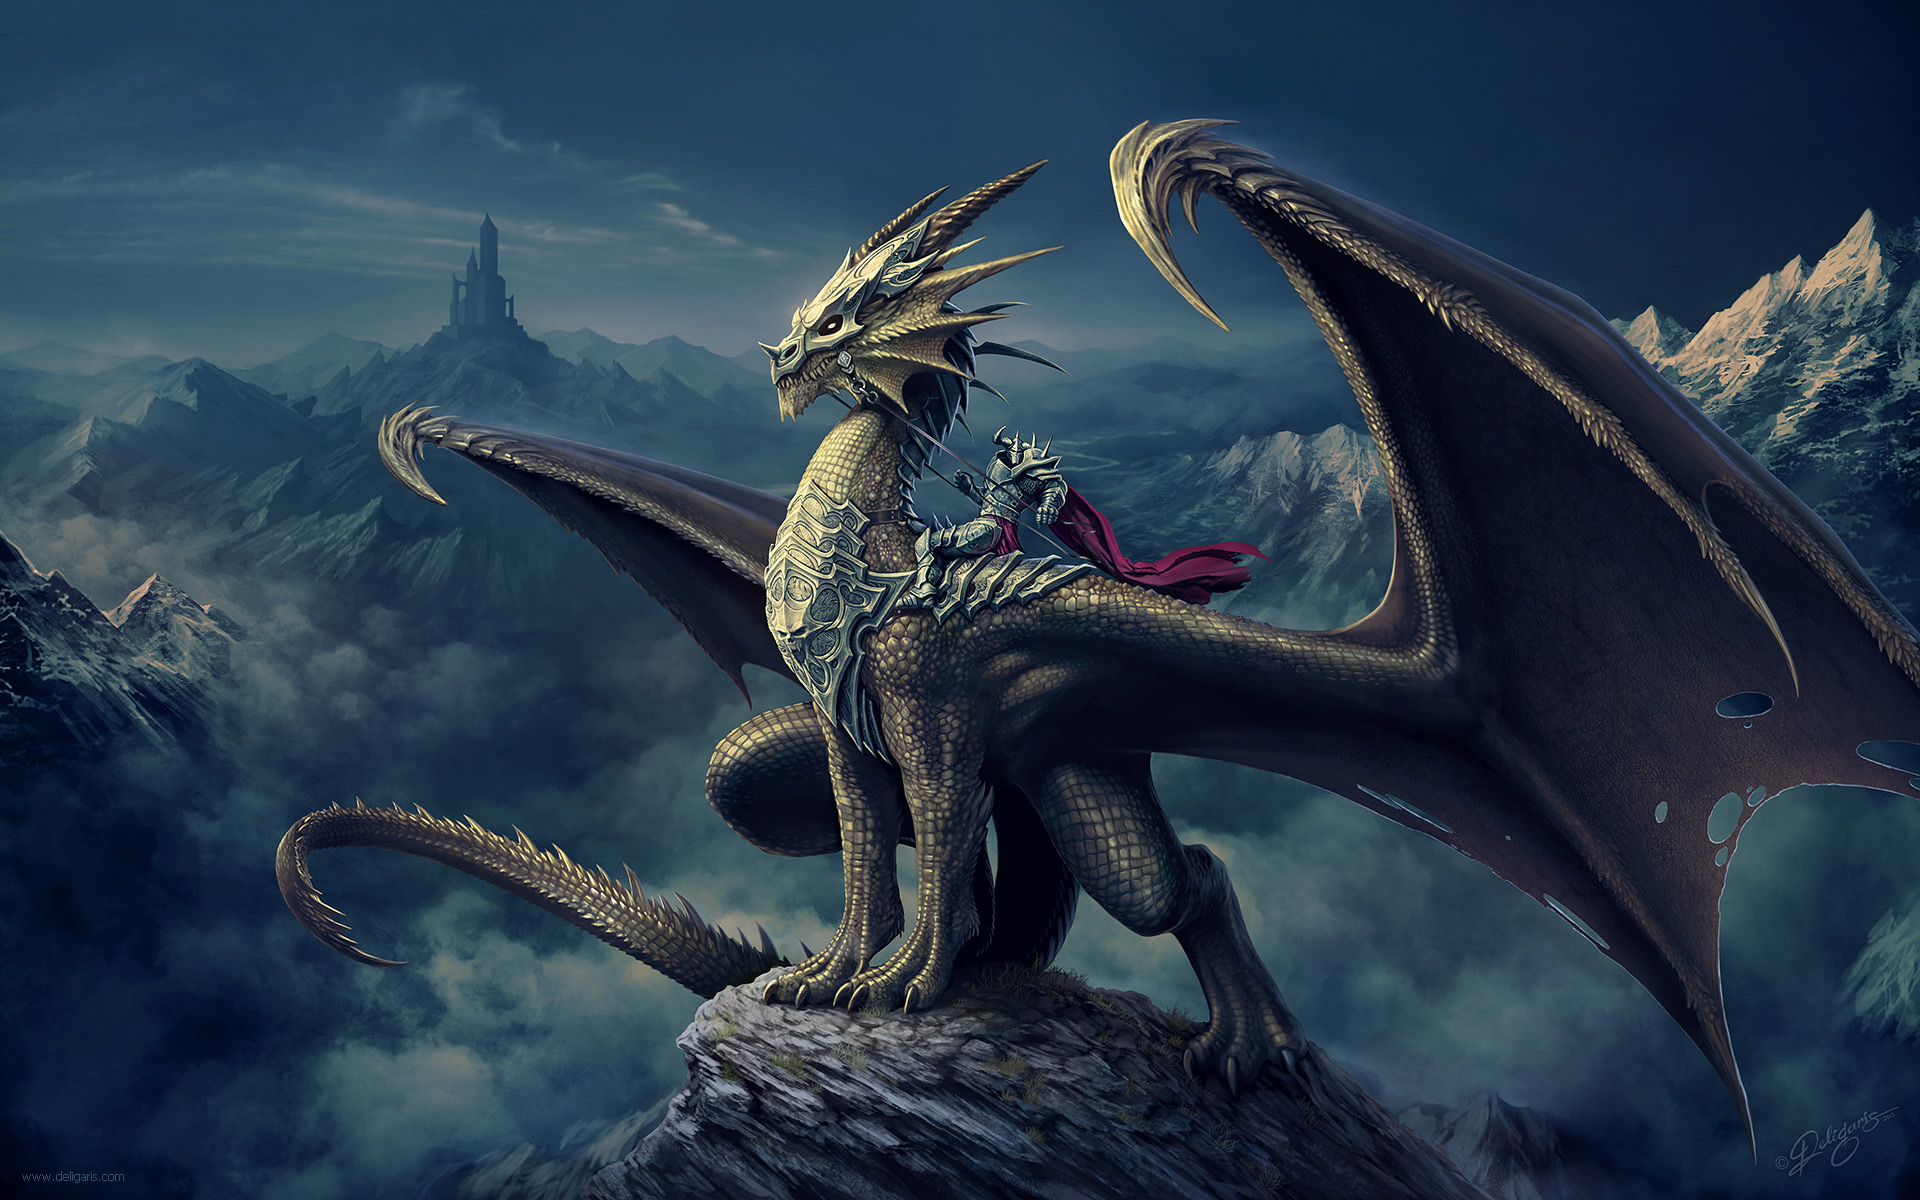 Dragon Rider by Deligaris